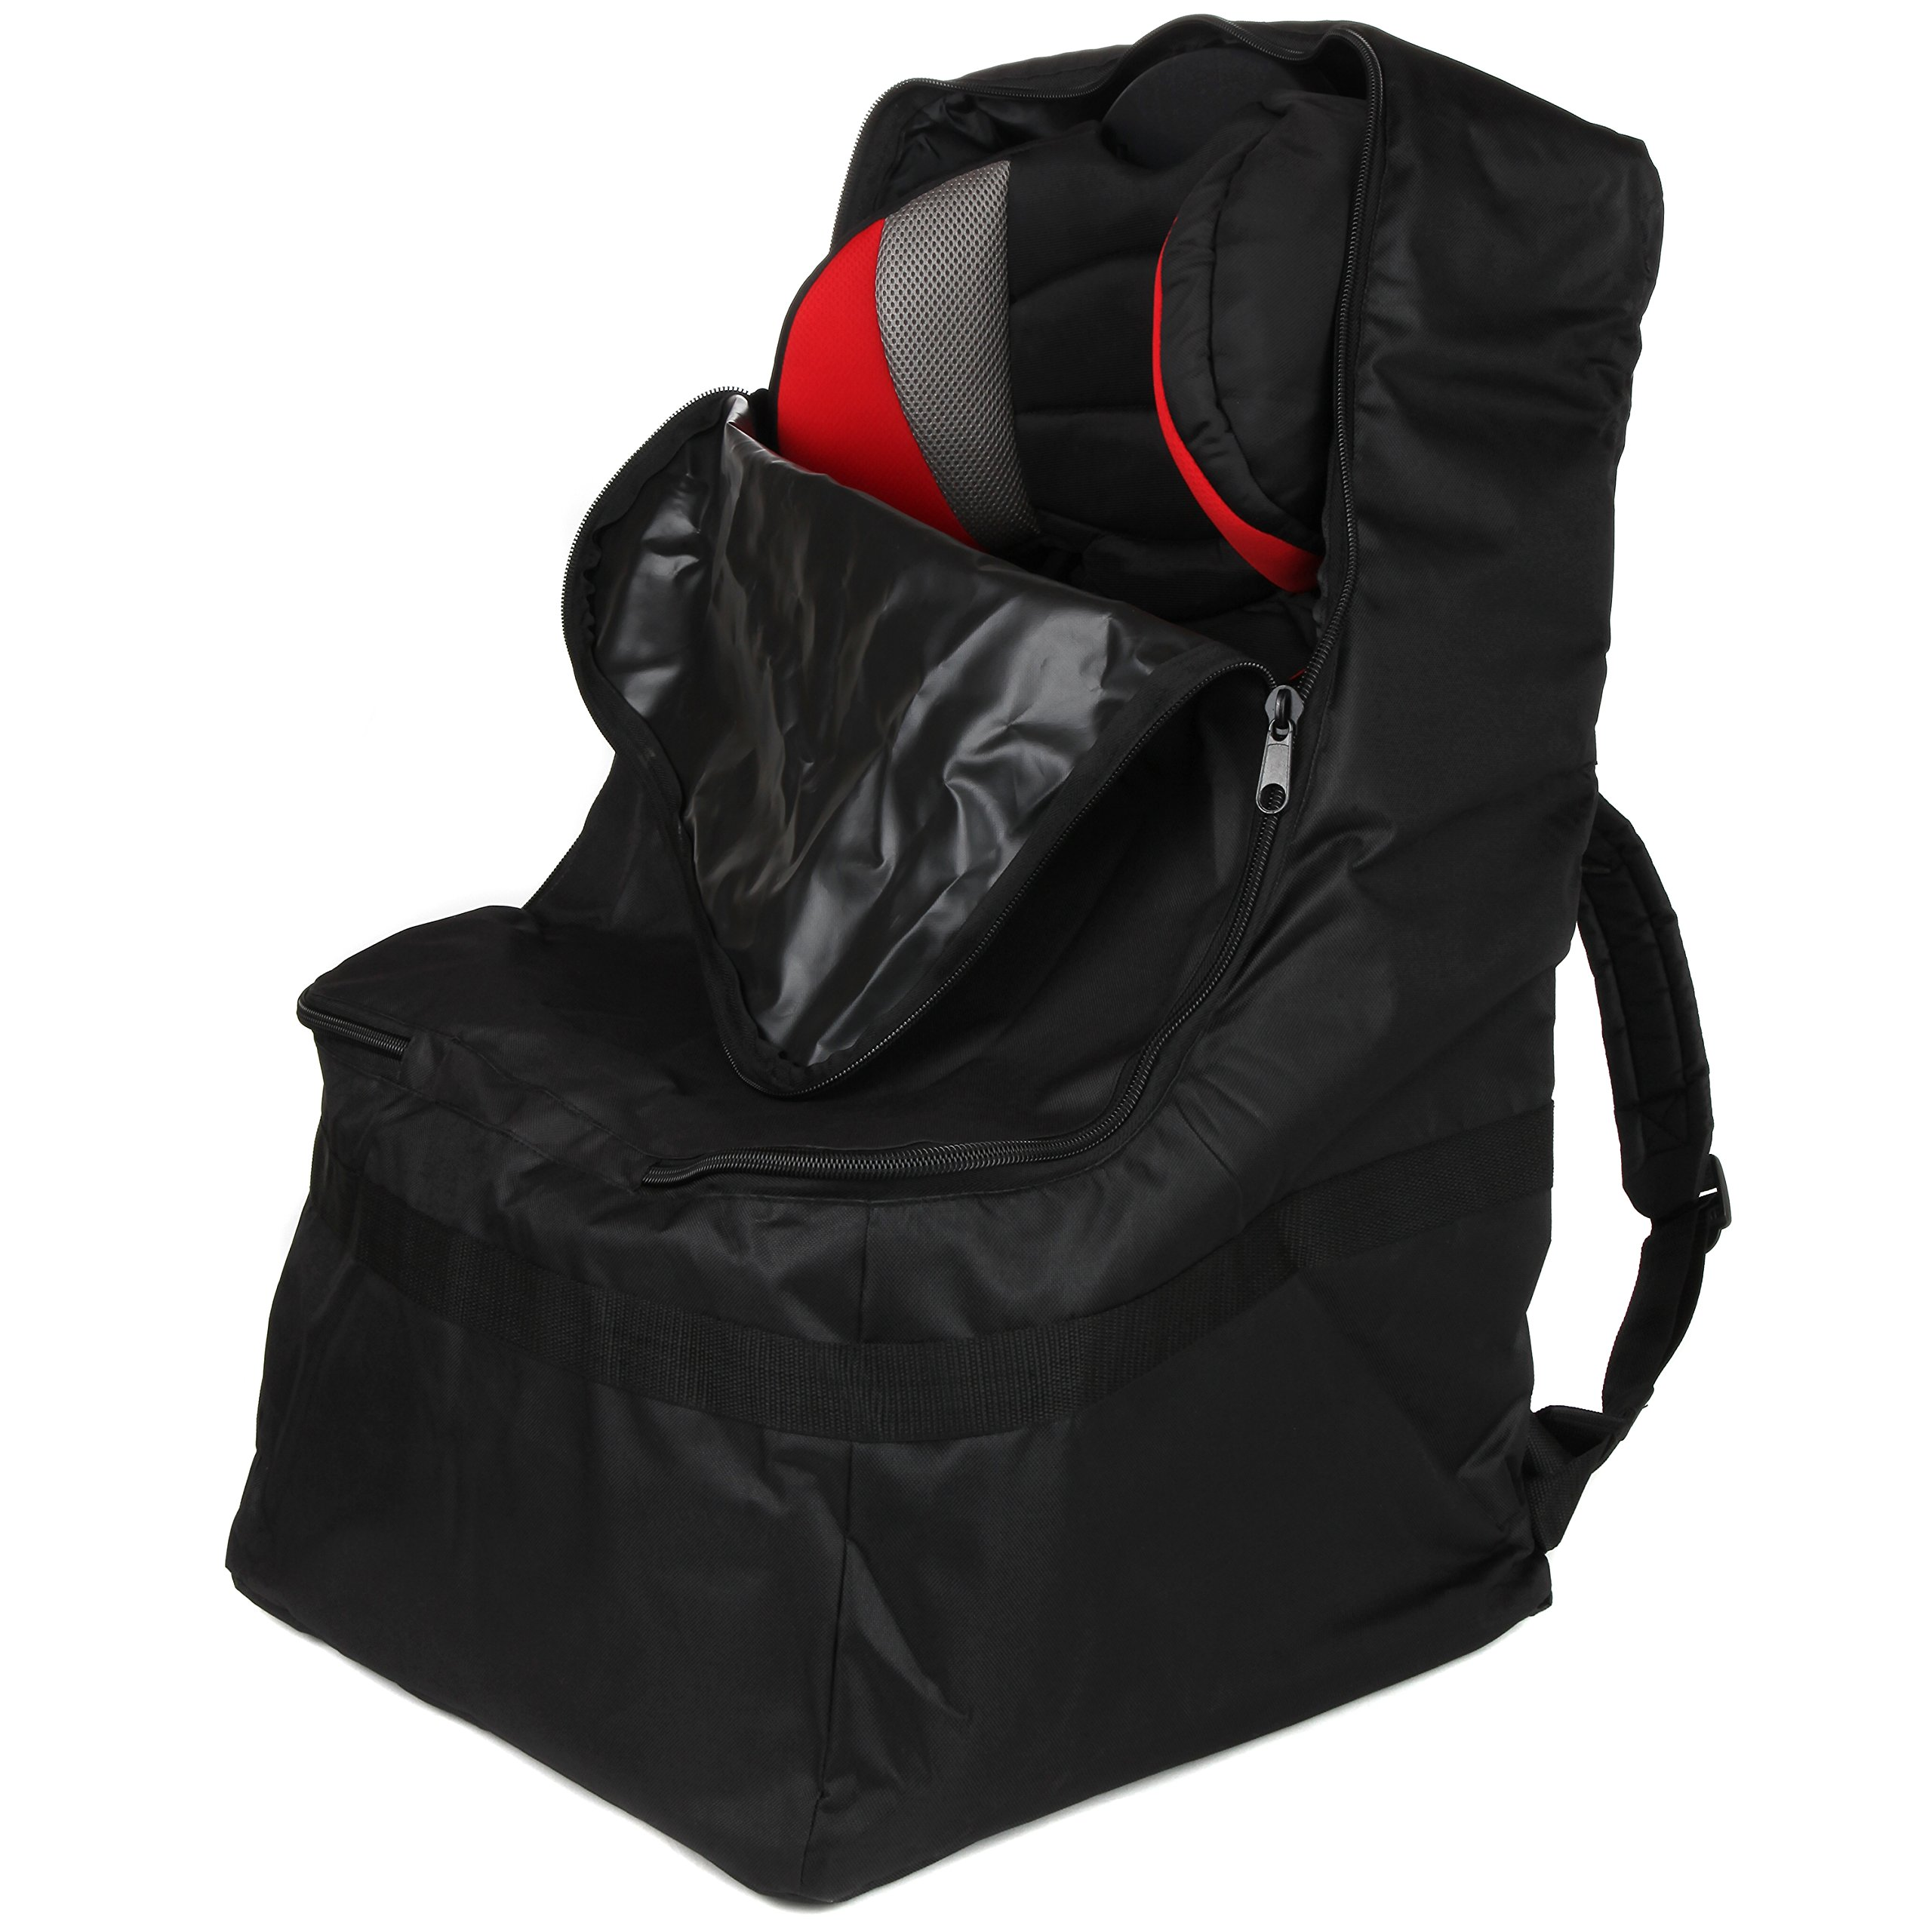 Full Size Car Seat Travel Bag - Black Carseat Carrier and Car Seat Bag for Airplane